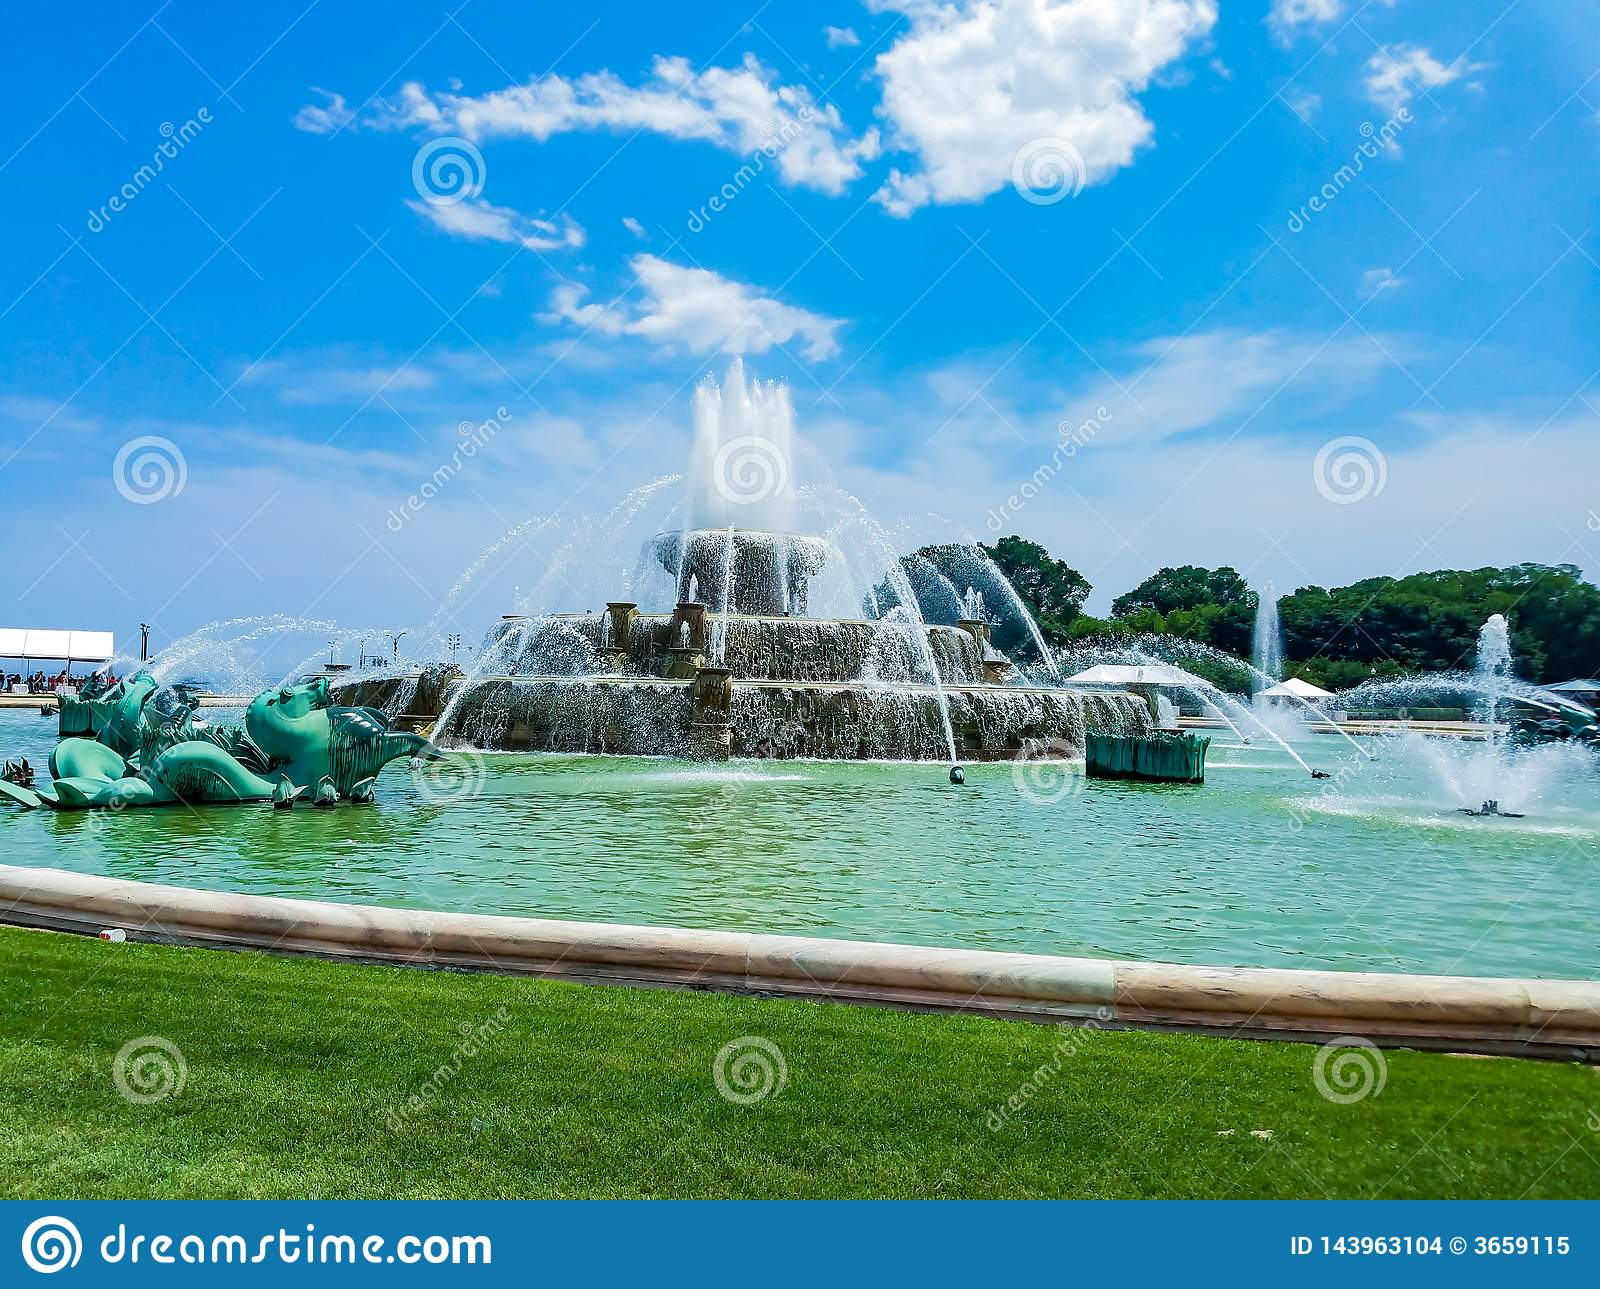 Chicago, Illinois, EUA 07 05 2018: Clarence Buckingham Fountain em Chicago com o céu azul no fundo